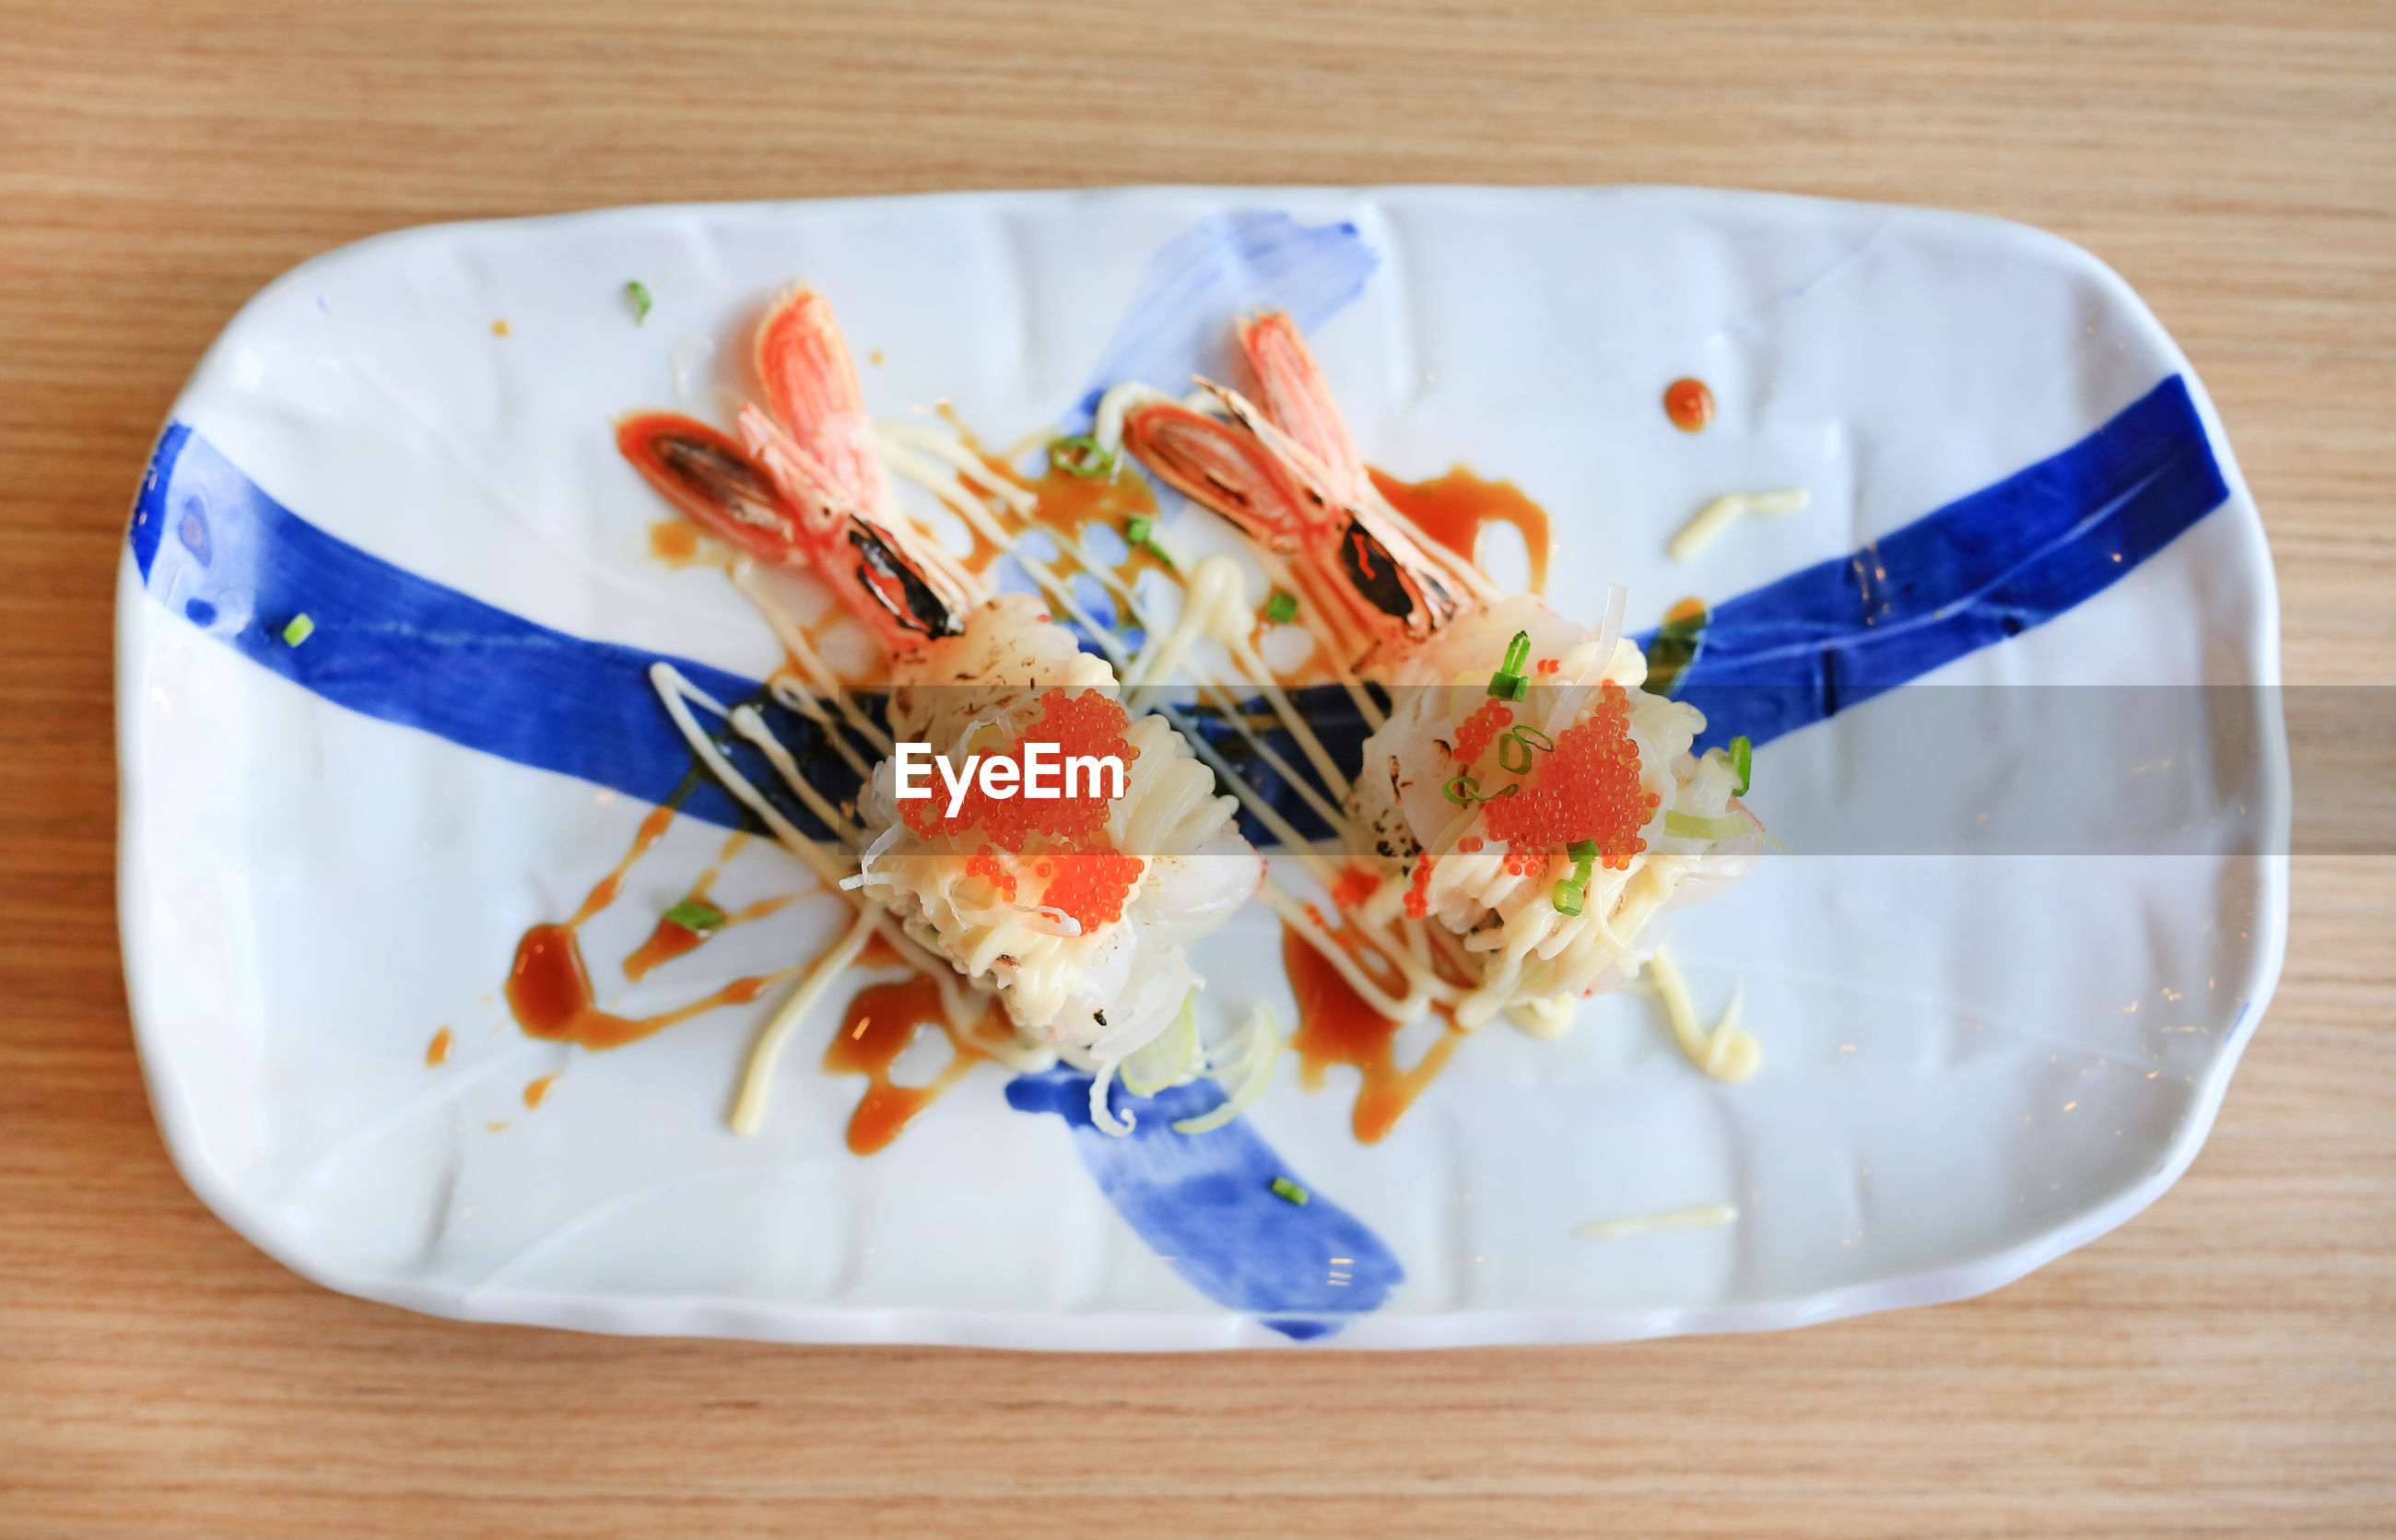 HIGH ANGLE VIEW OF FOOD IN PLATE